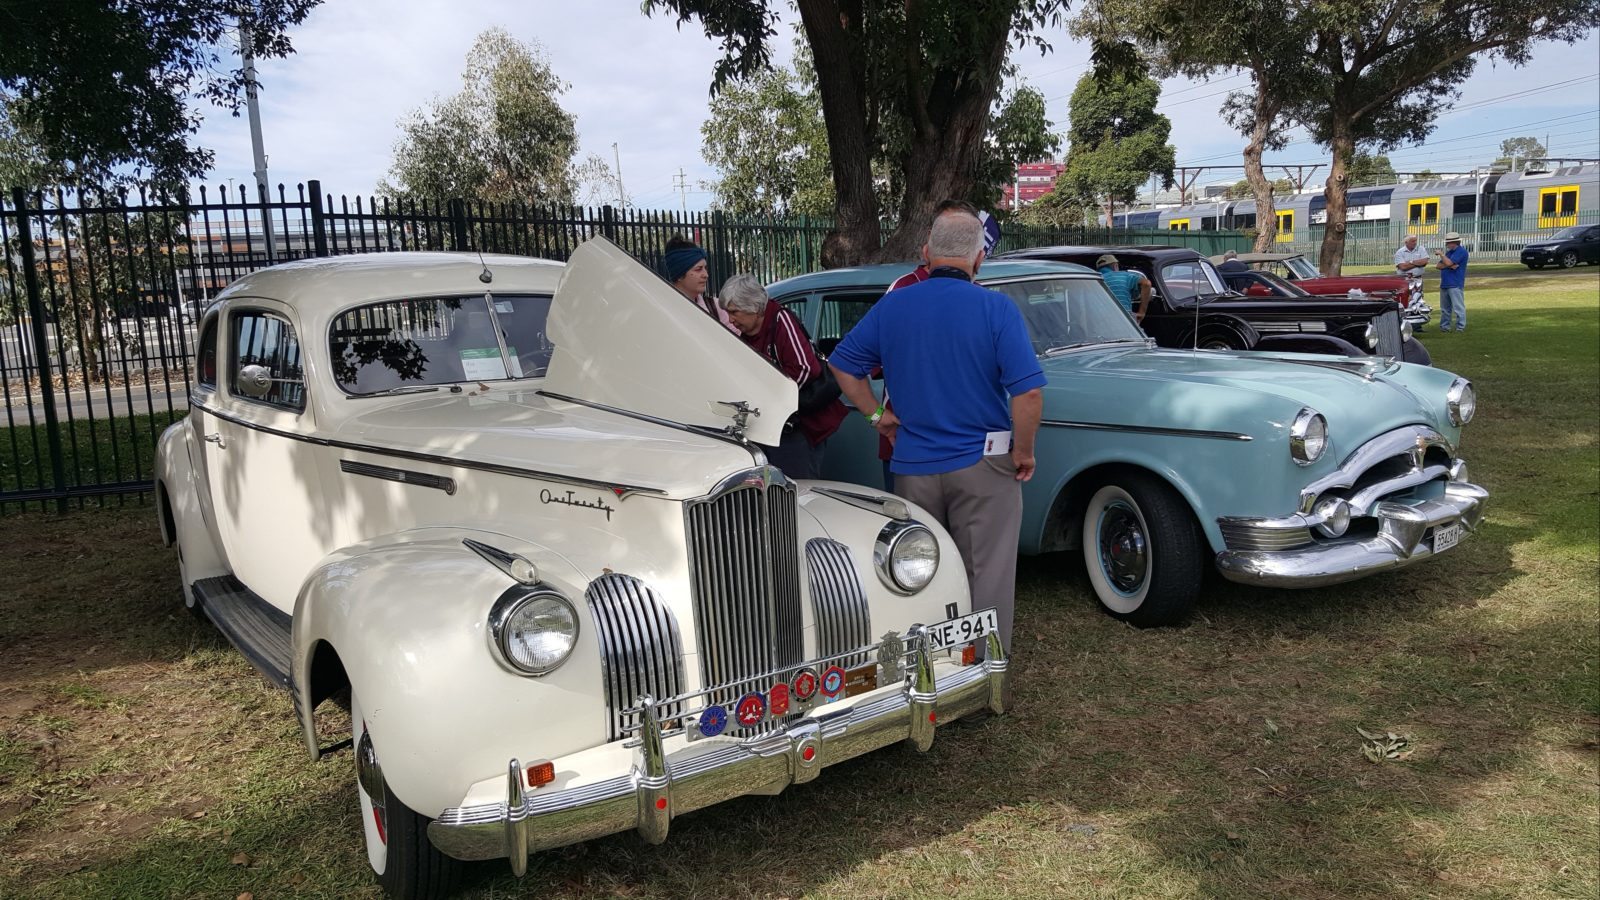 The Council of Motor Clubs Heritage Day